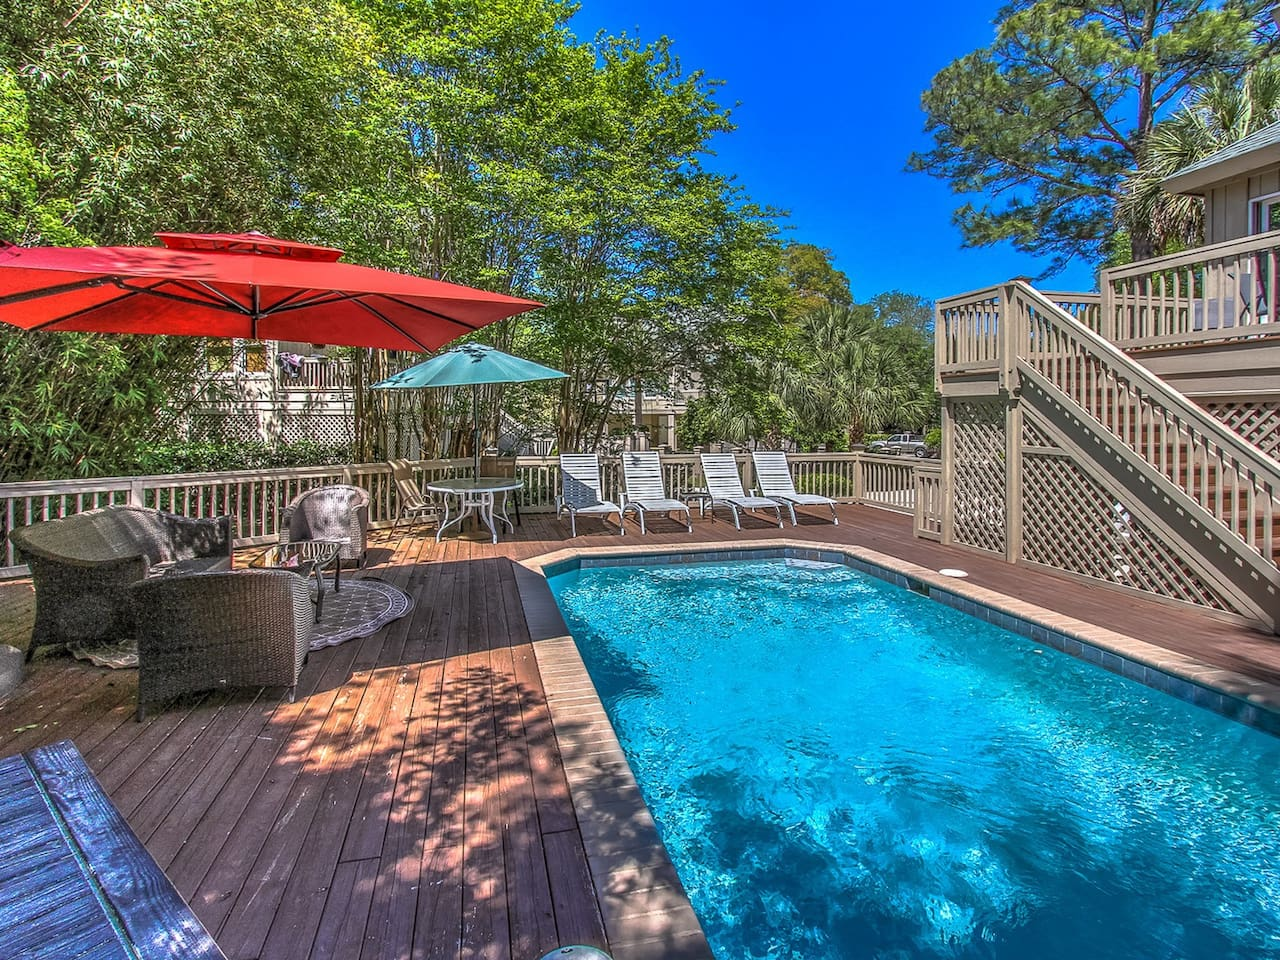 Pool and Deck Area at 13 Myrtle Lane